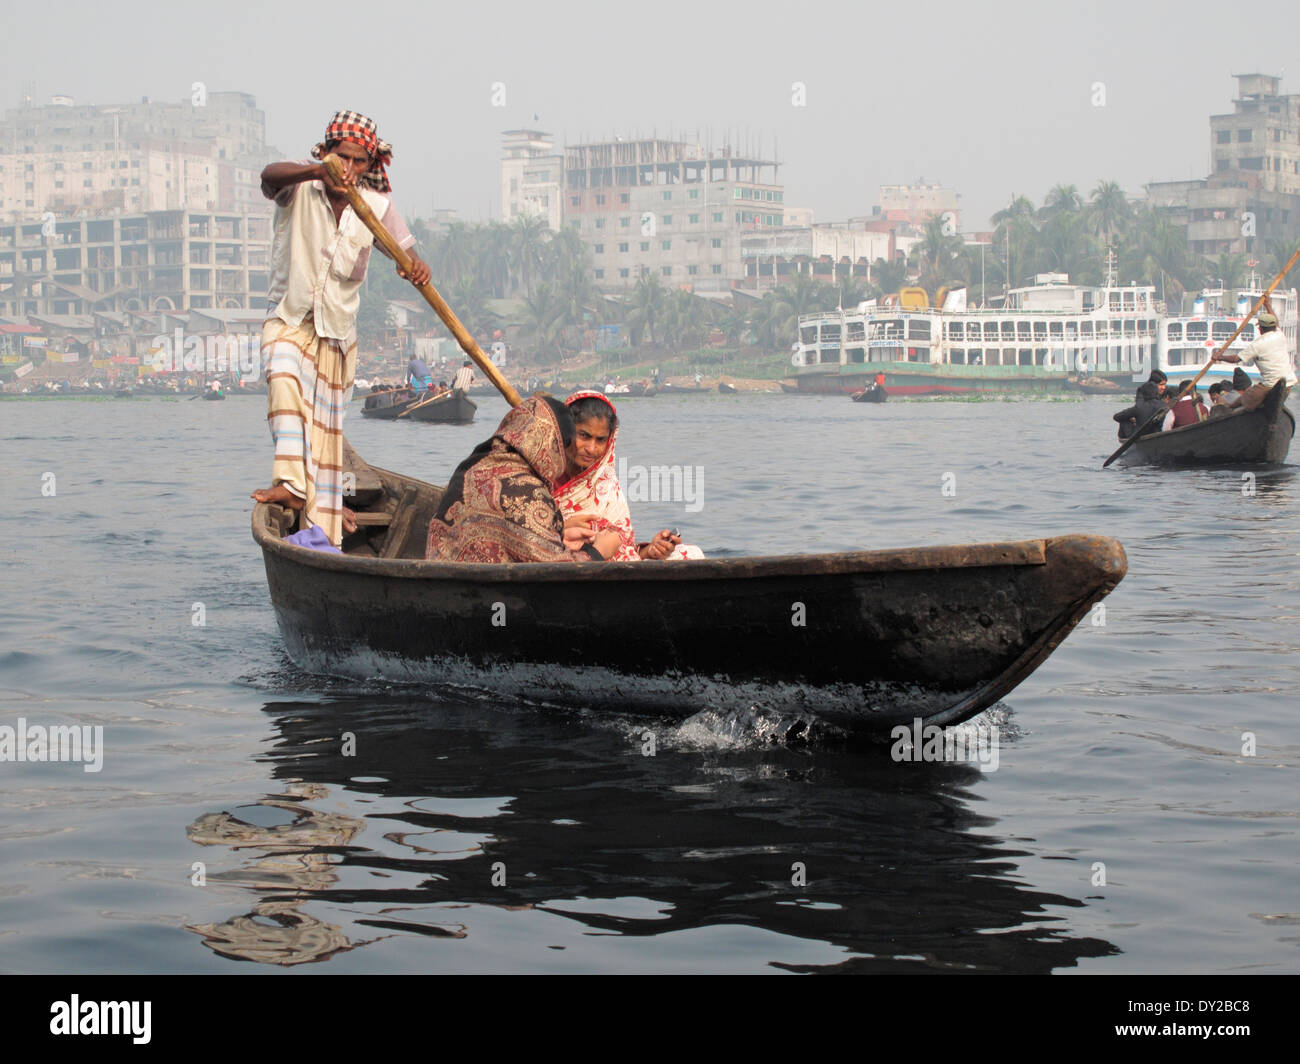 Row boat ferry in Dhaka - Stock Image